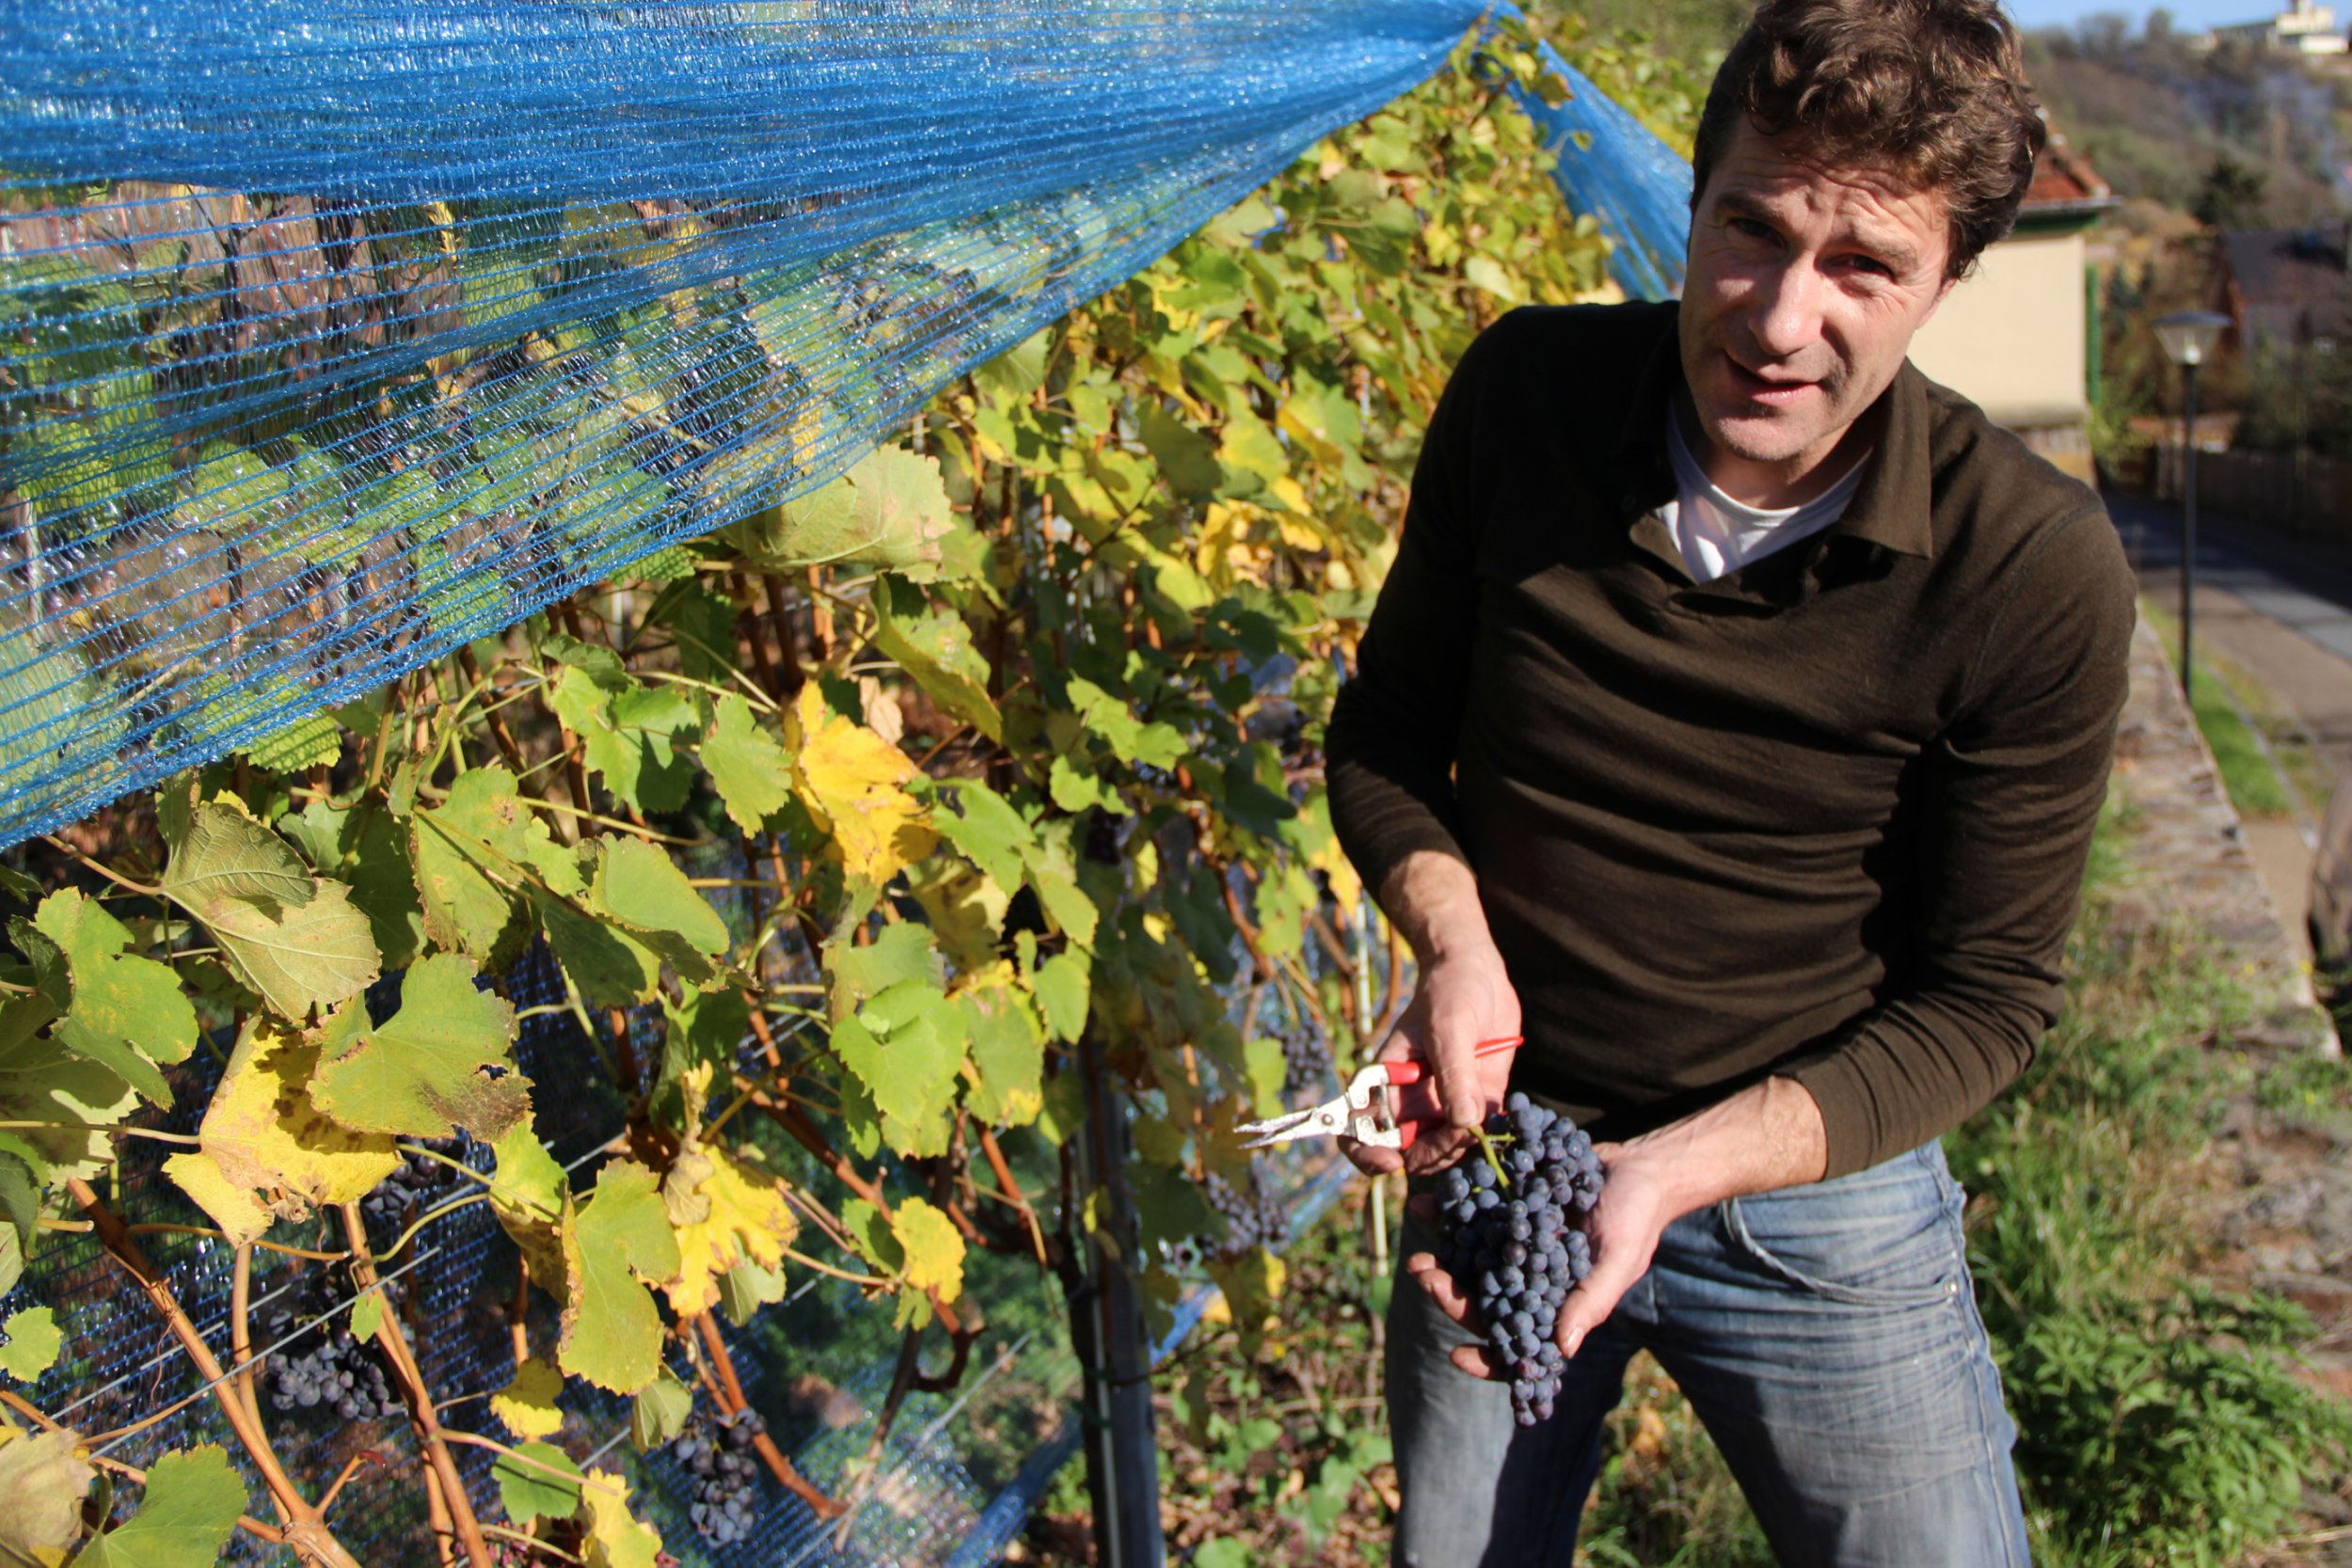 EB_Italian wine in Saxony_Martin Schwarz with his grapes_photo credit Martin Schwarz